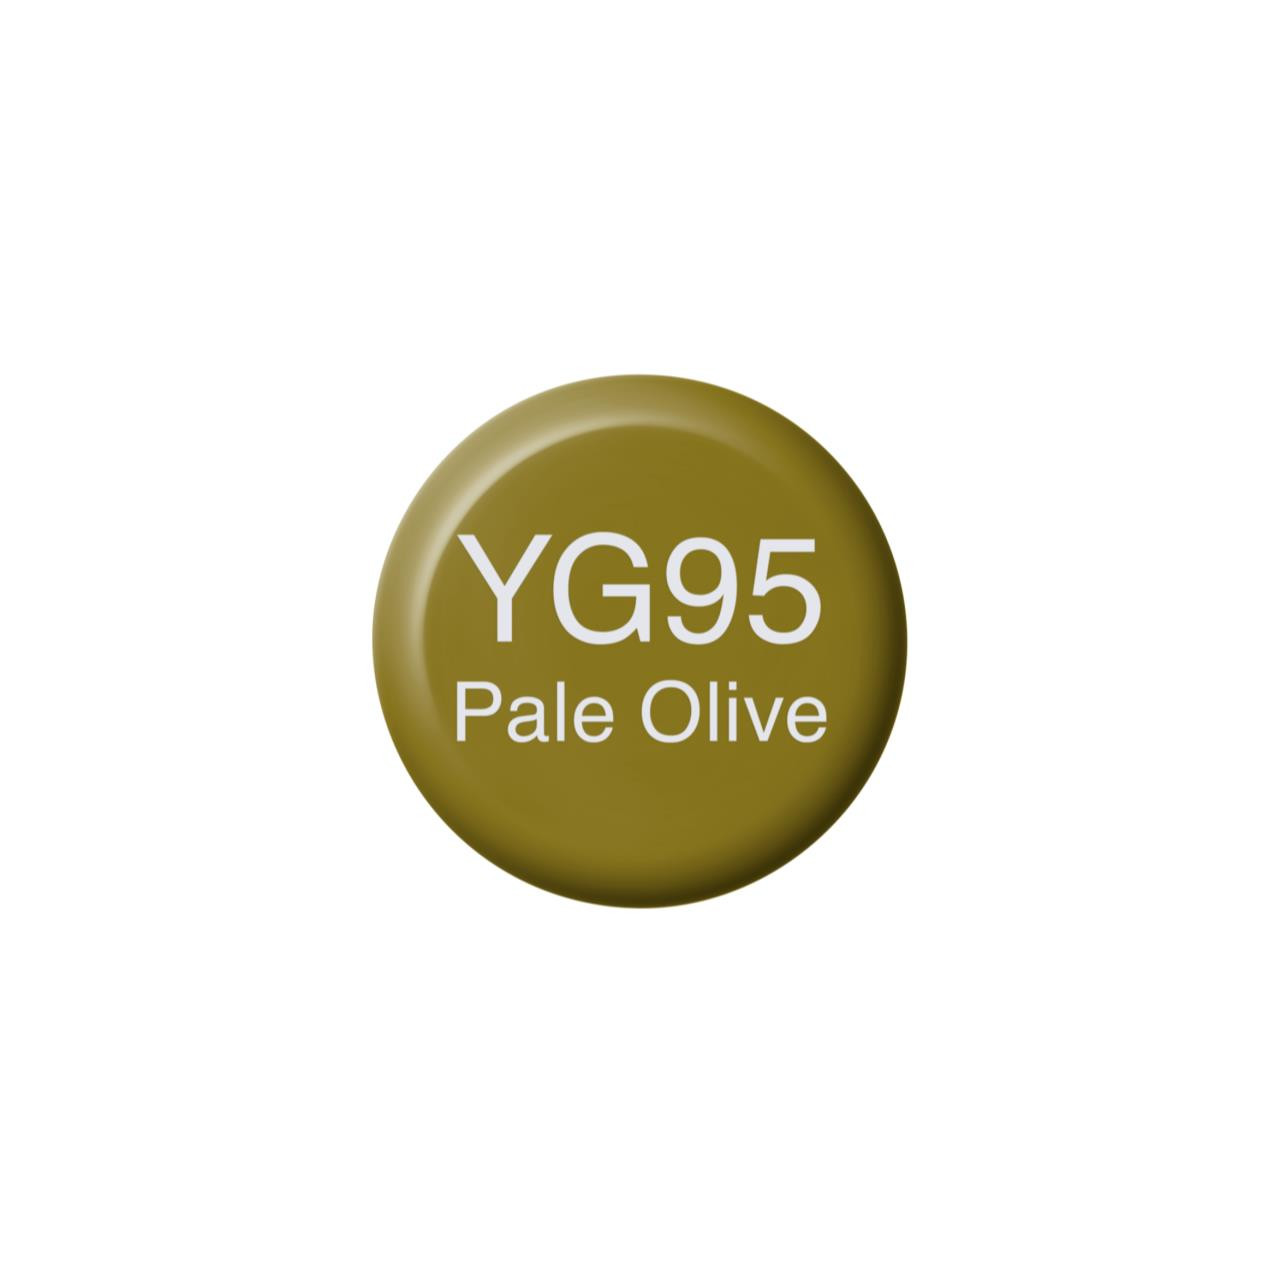 YG95 Pale Olive, Copic Ink - 4511338058541